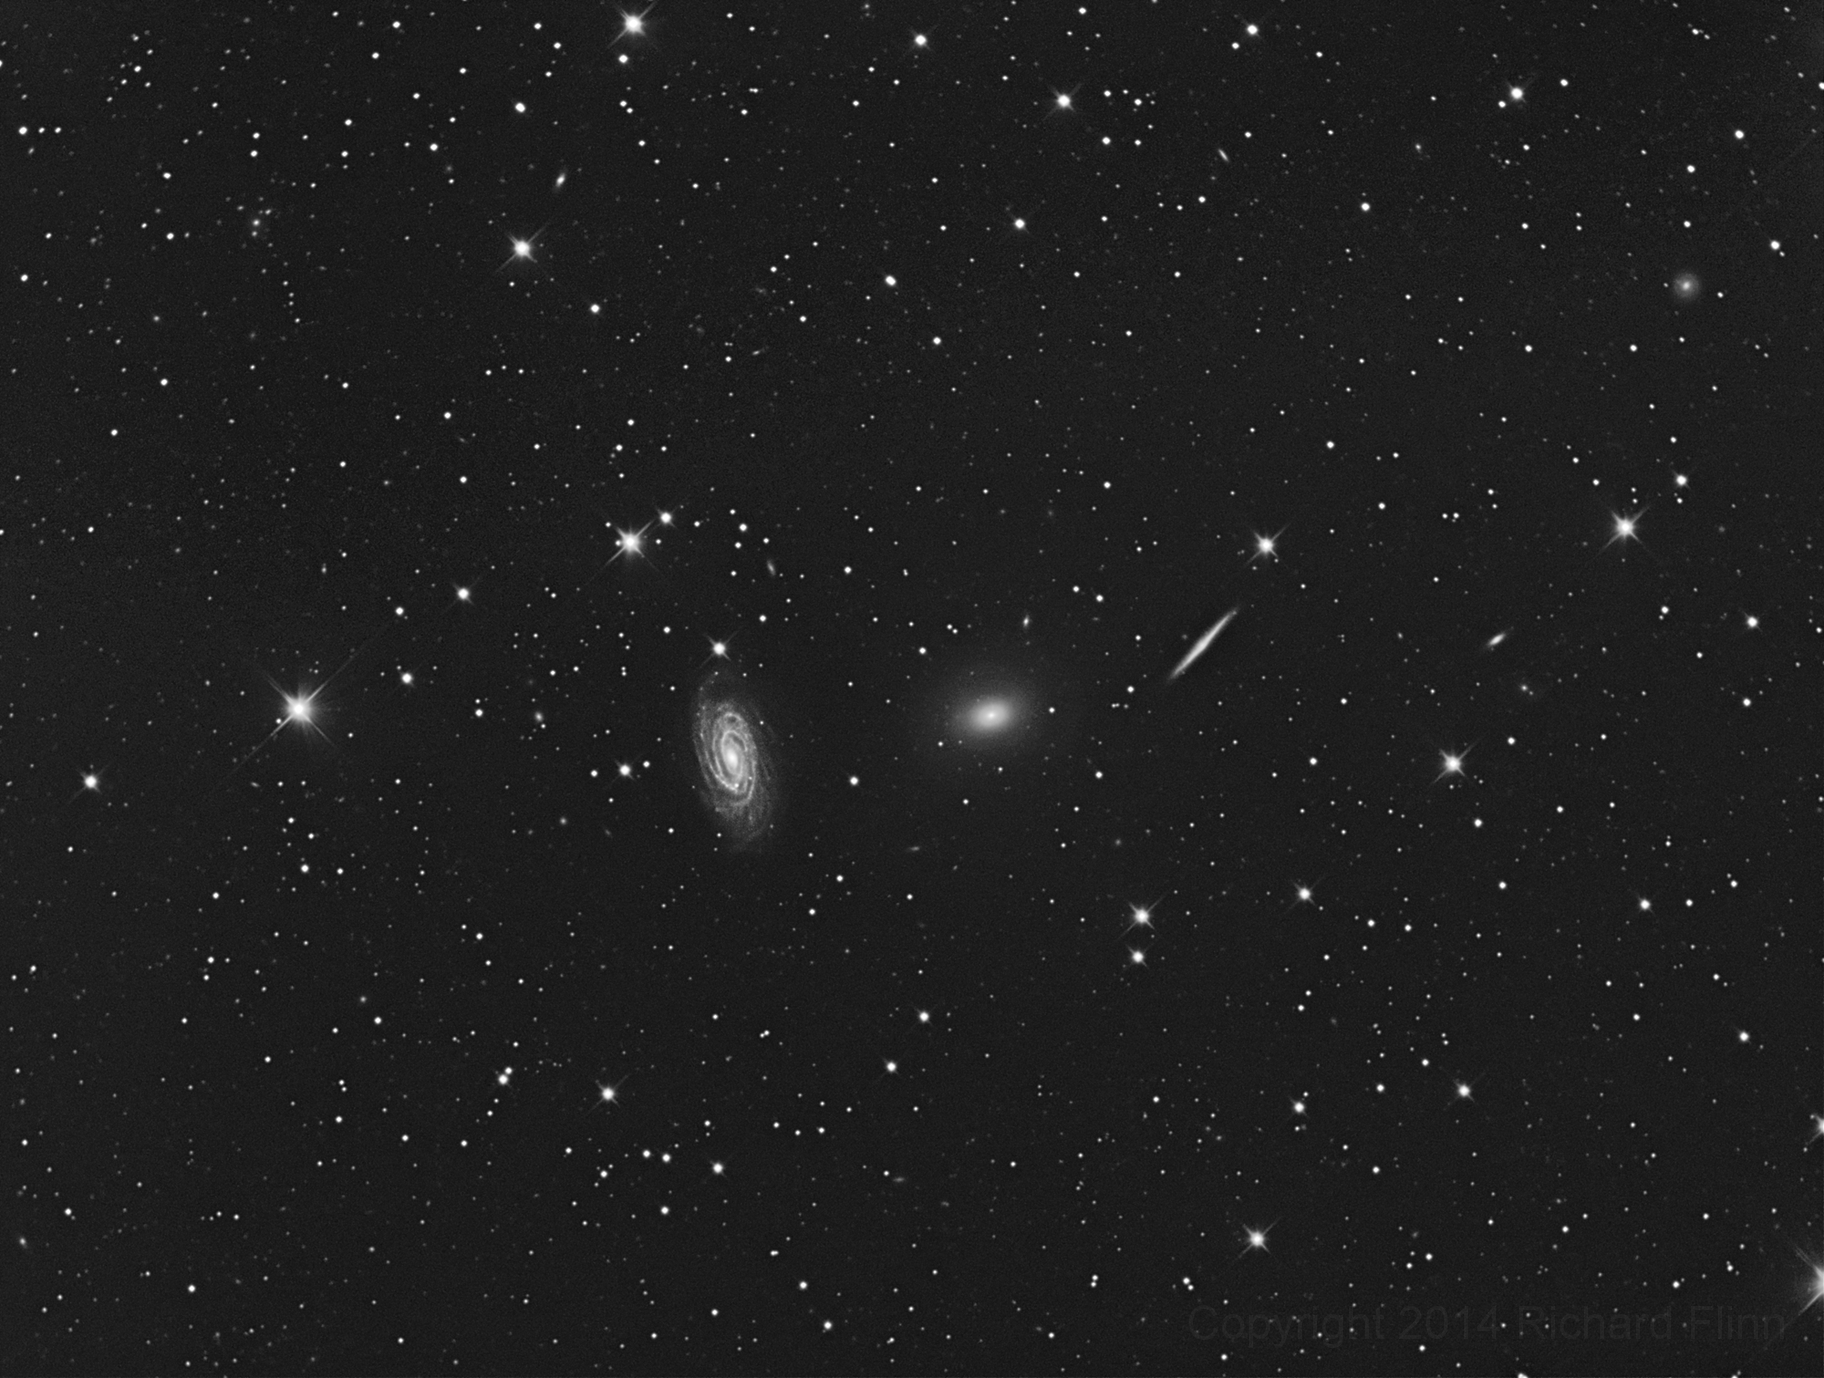 Draco Group (NGC 5985, NGC 5982, NGC 5981, NGC 5976) - small group of galaxies about 100 million Light Years away